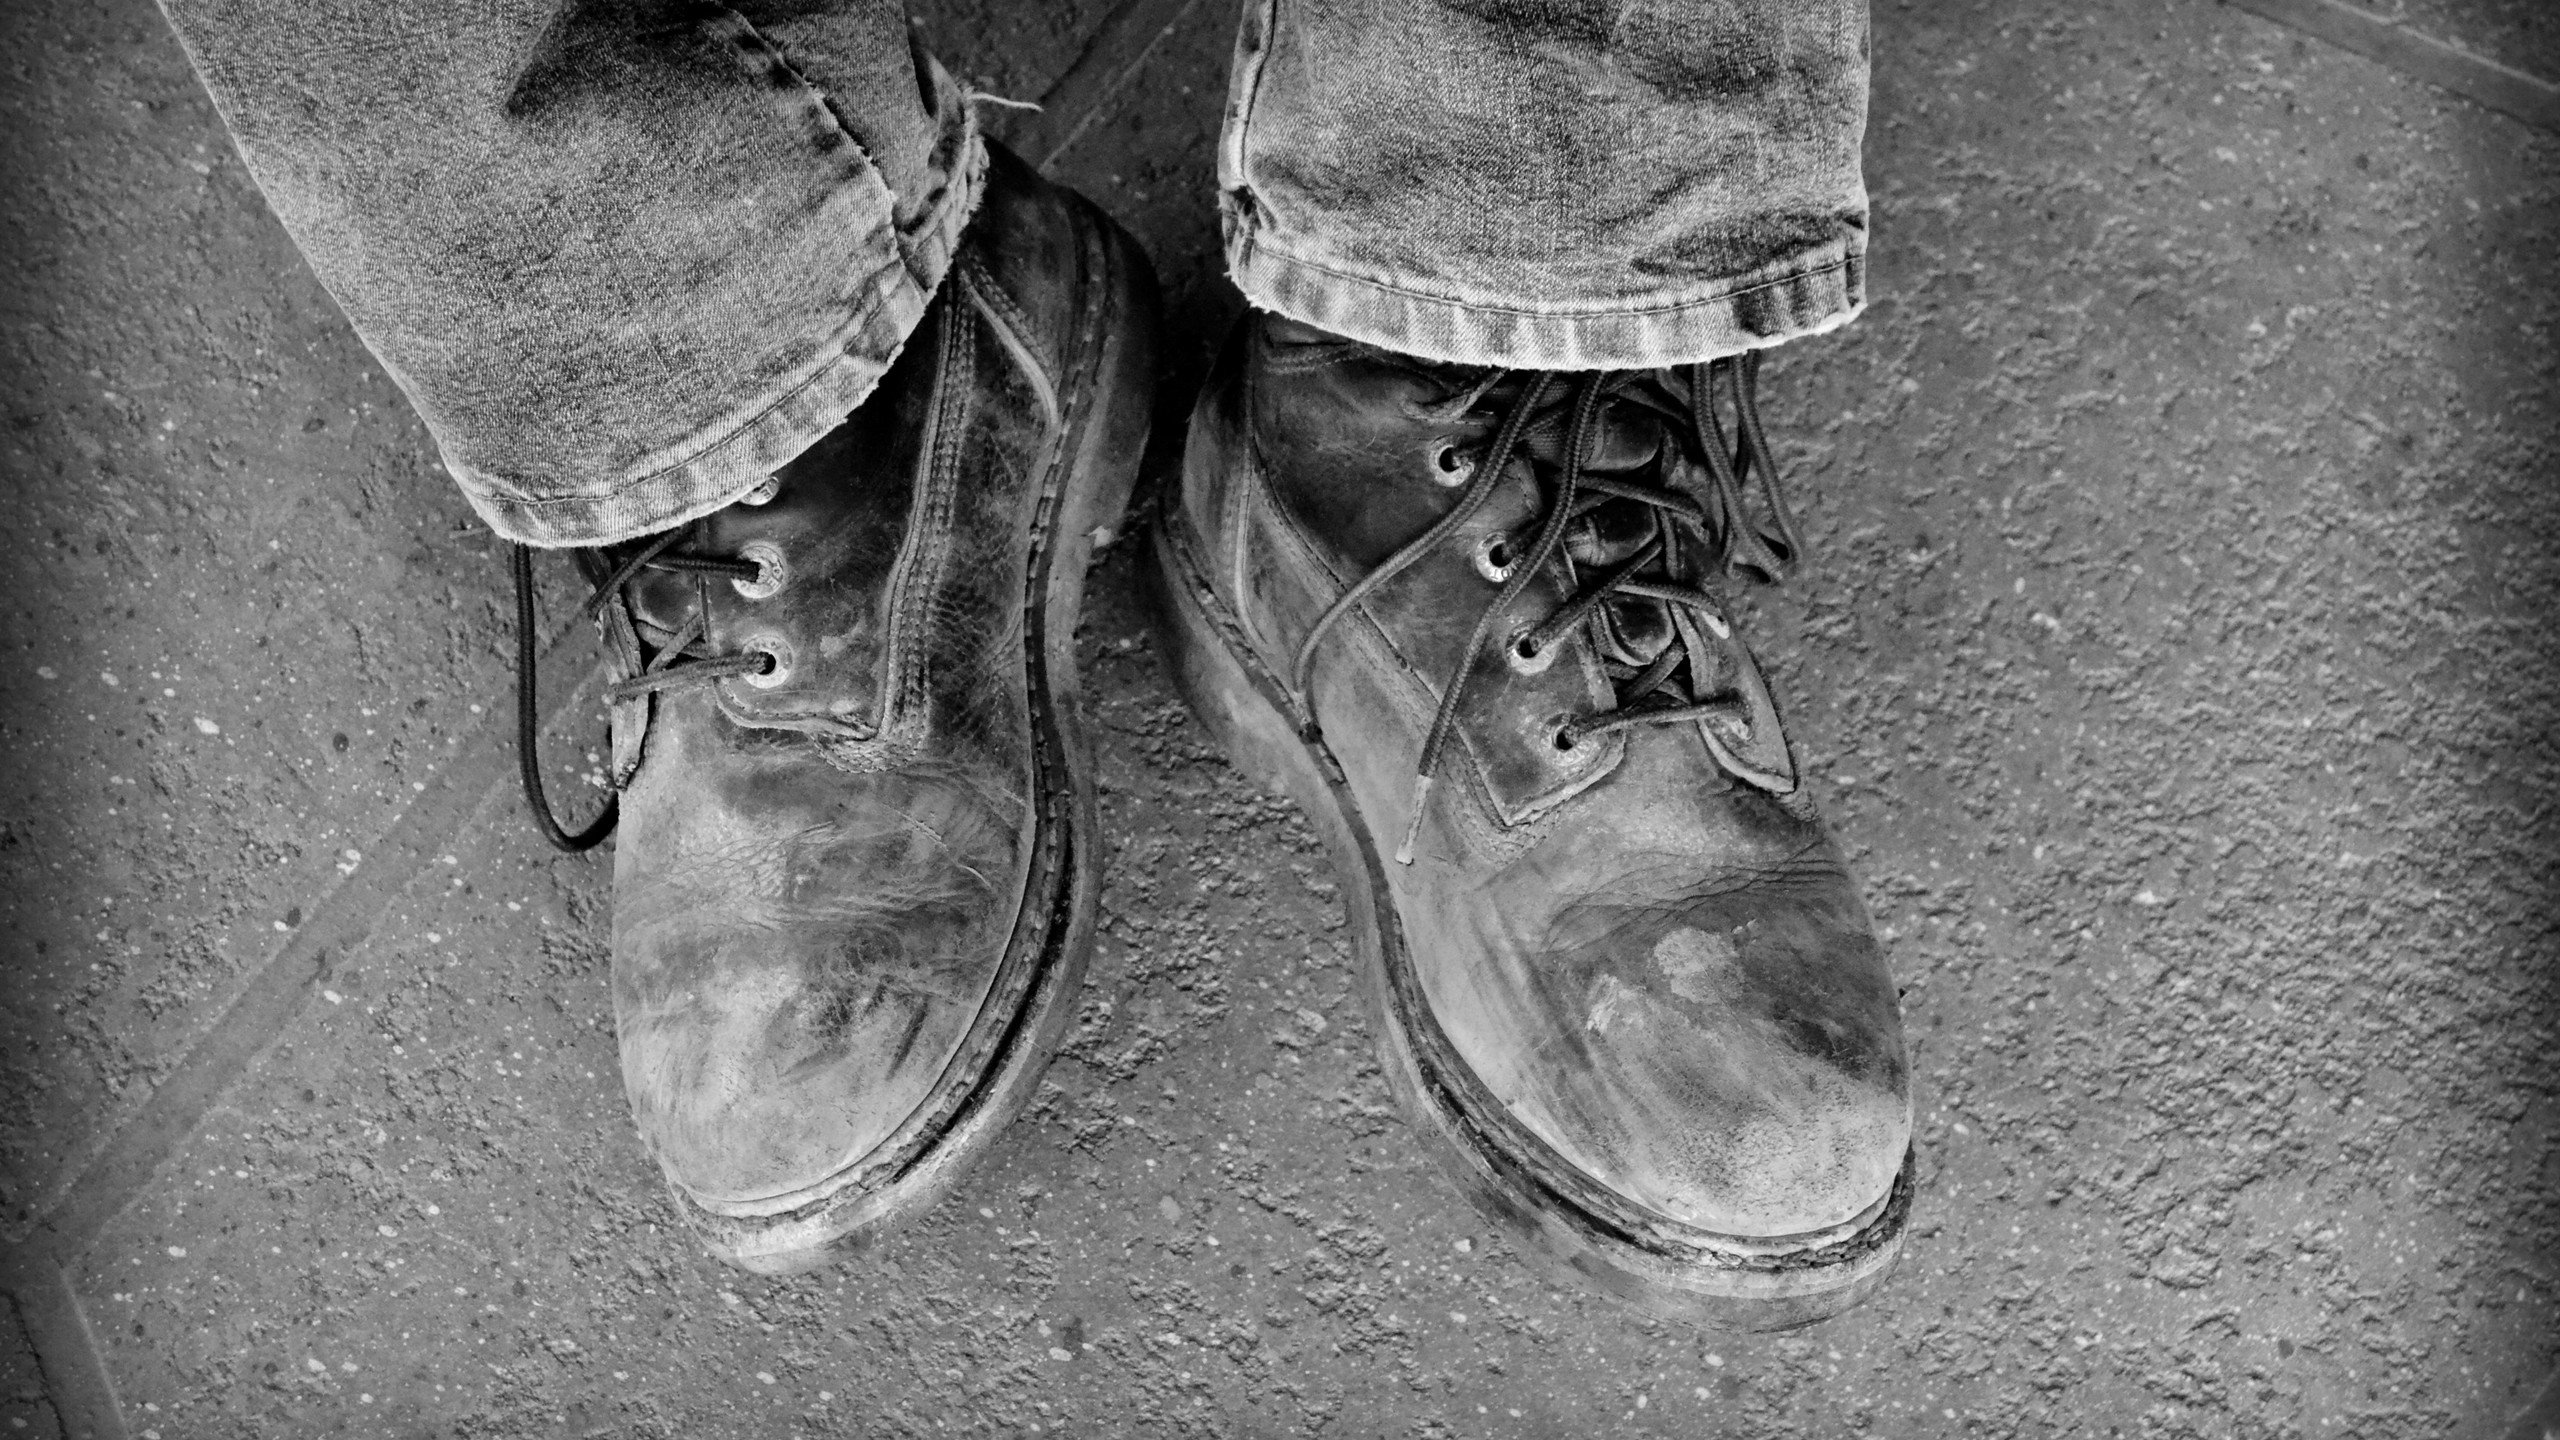 dads boots_bw